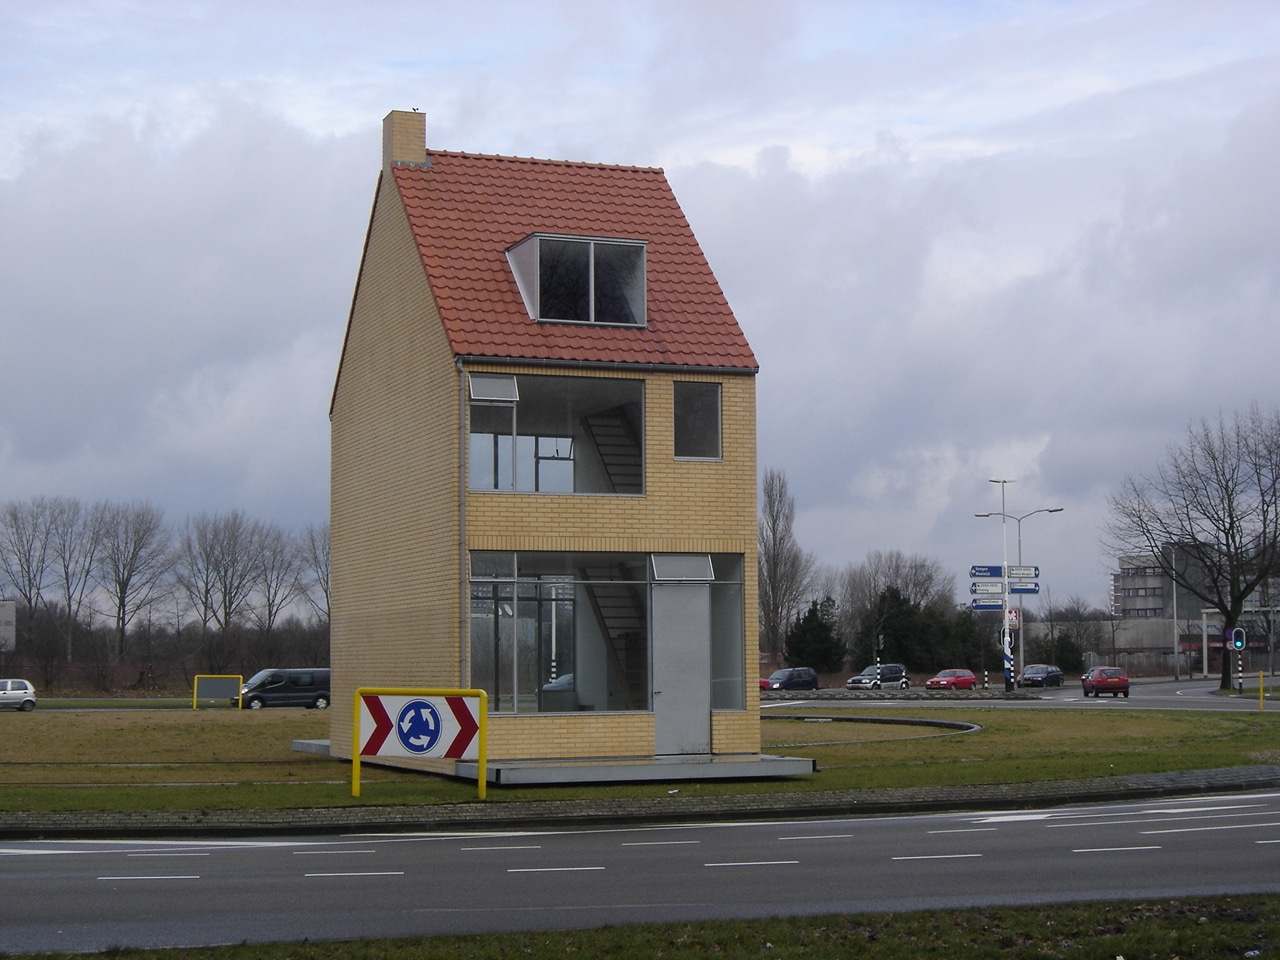 Tilburg - Rotating house on roundabout